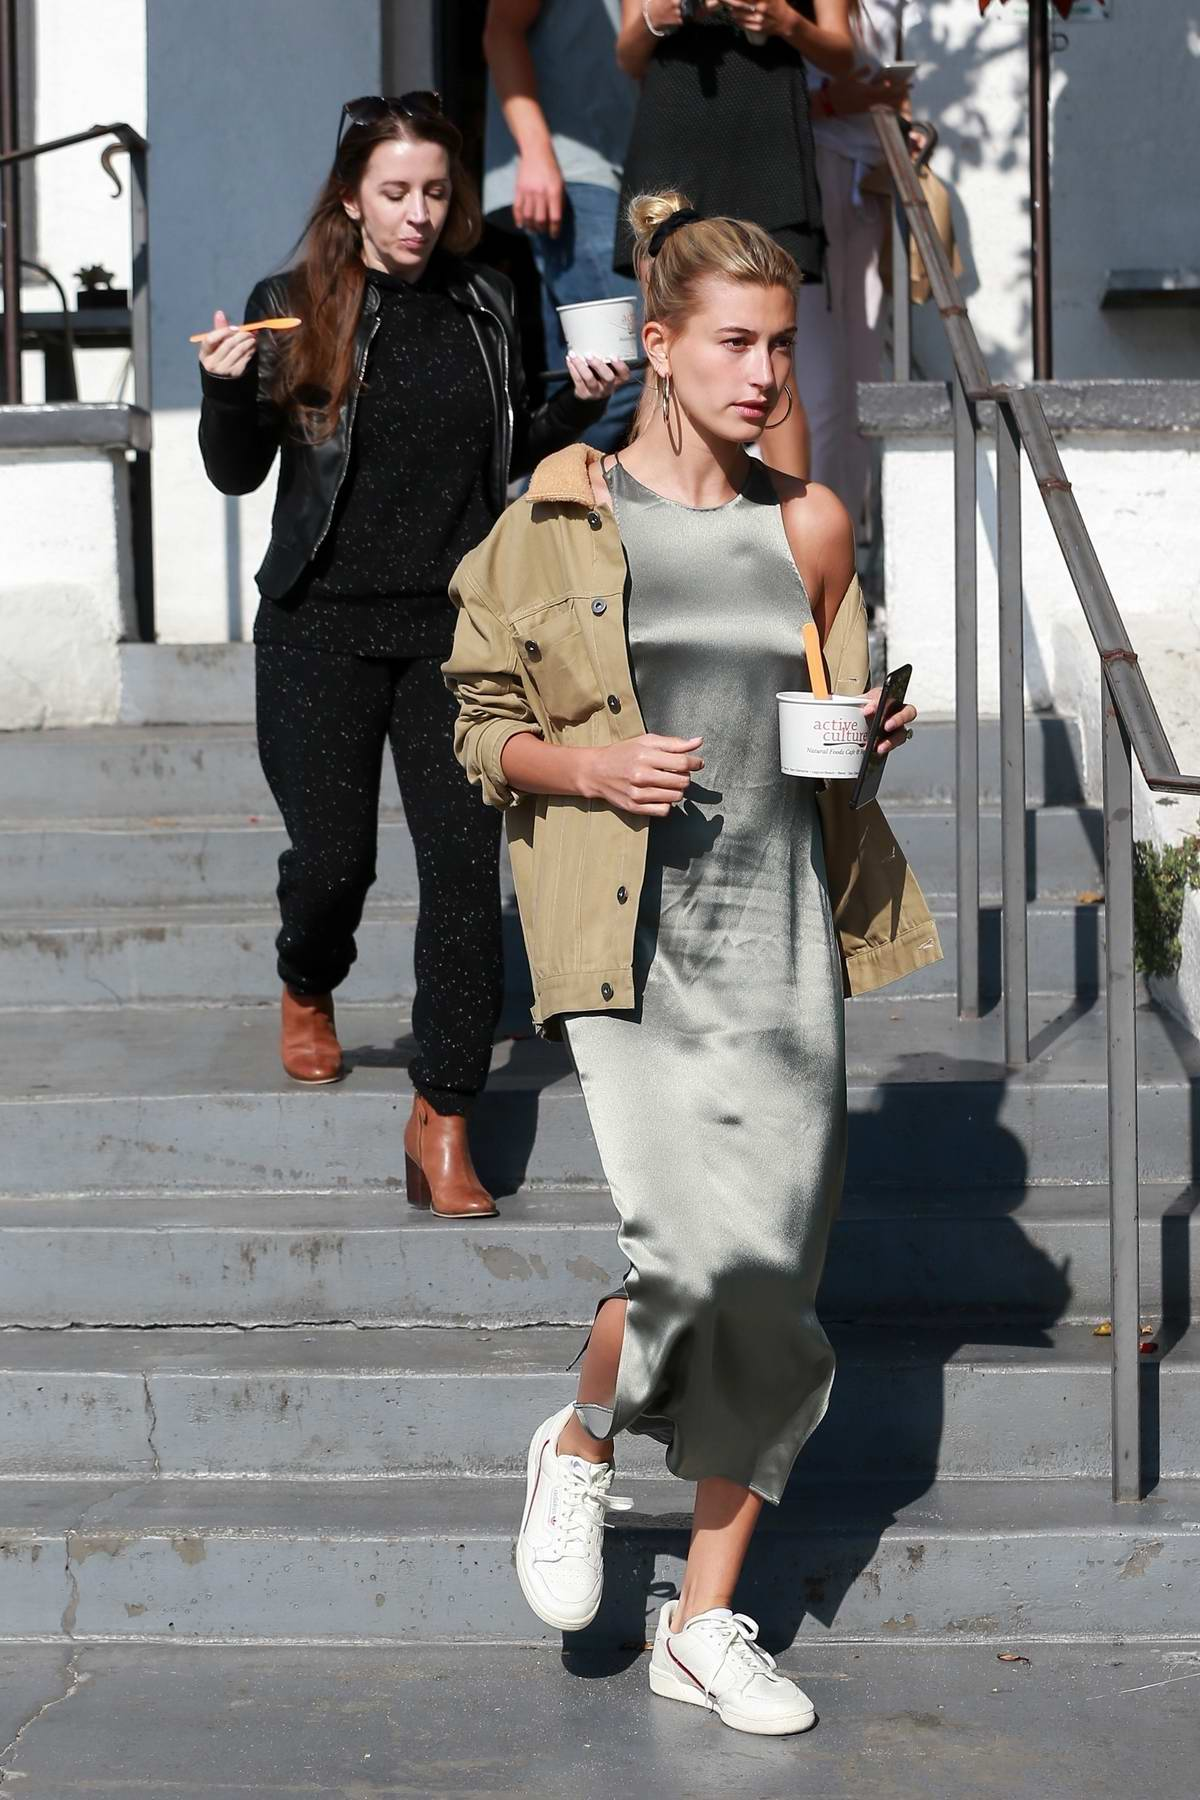 Hailey Baldwin Bieber gets frozen yogurt with mother-in-law Pattie Mallette in Laguna Beach, California